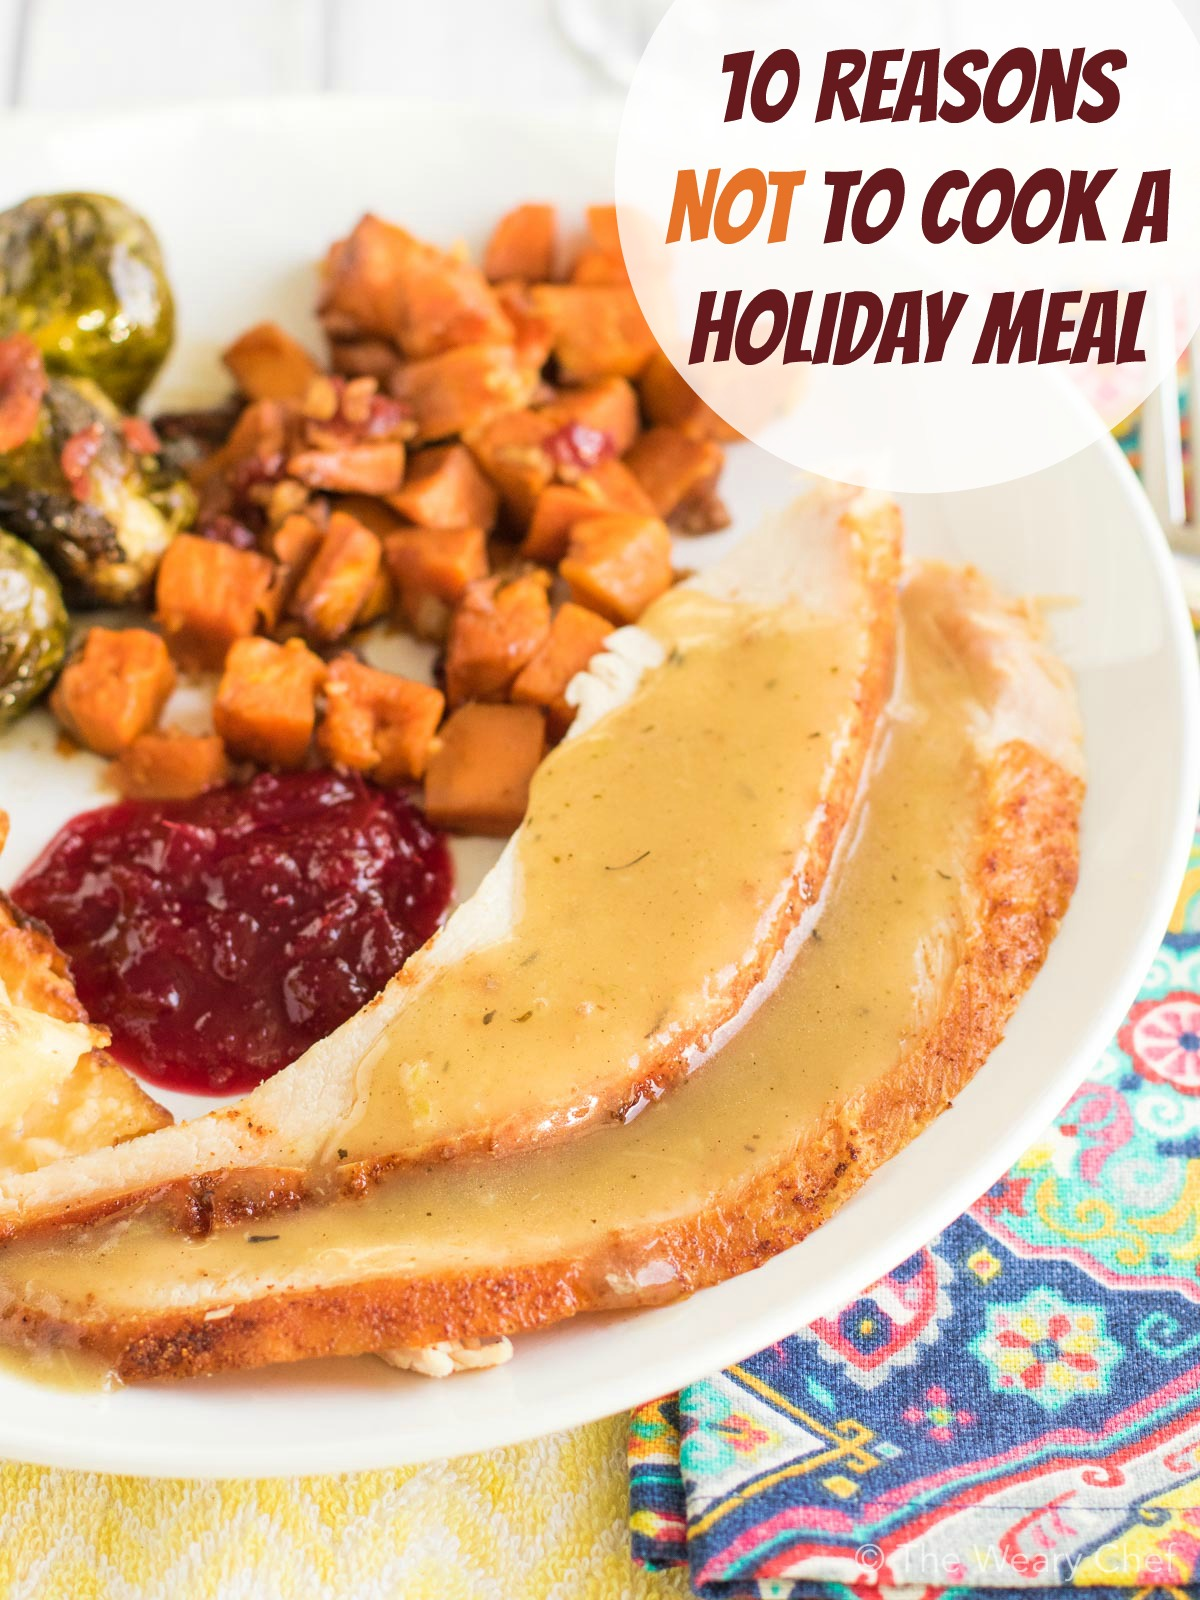 Planning your next holiday dinner? Find out why you should order a pre-made meal instead!